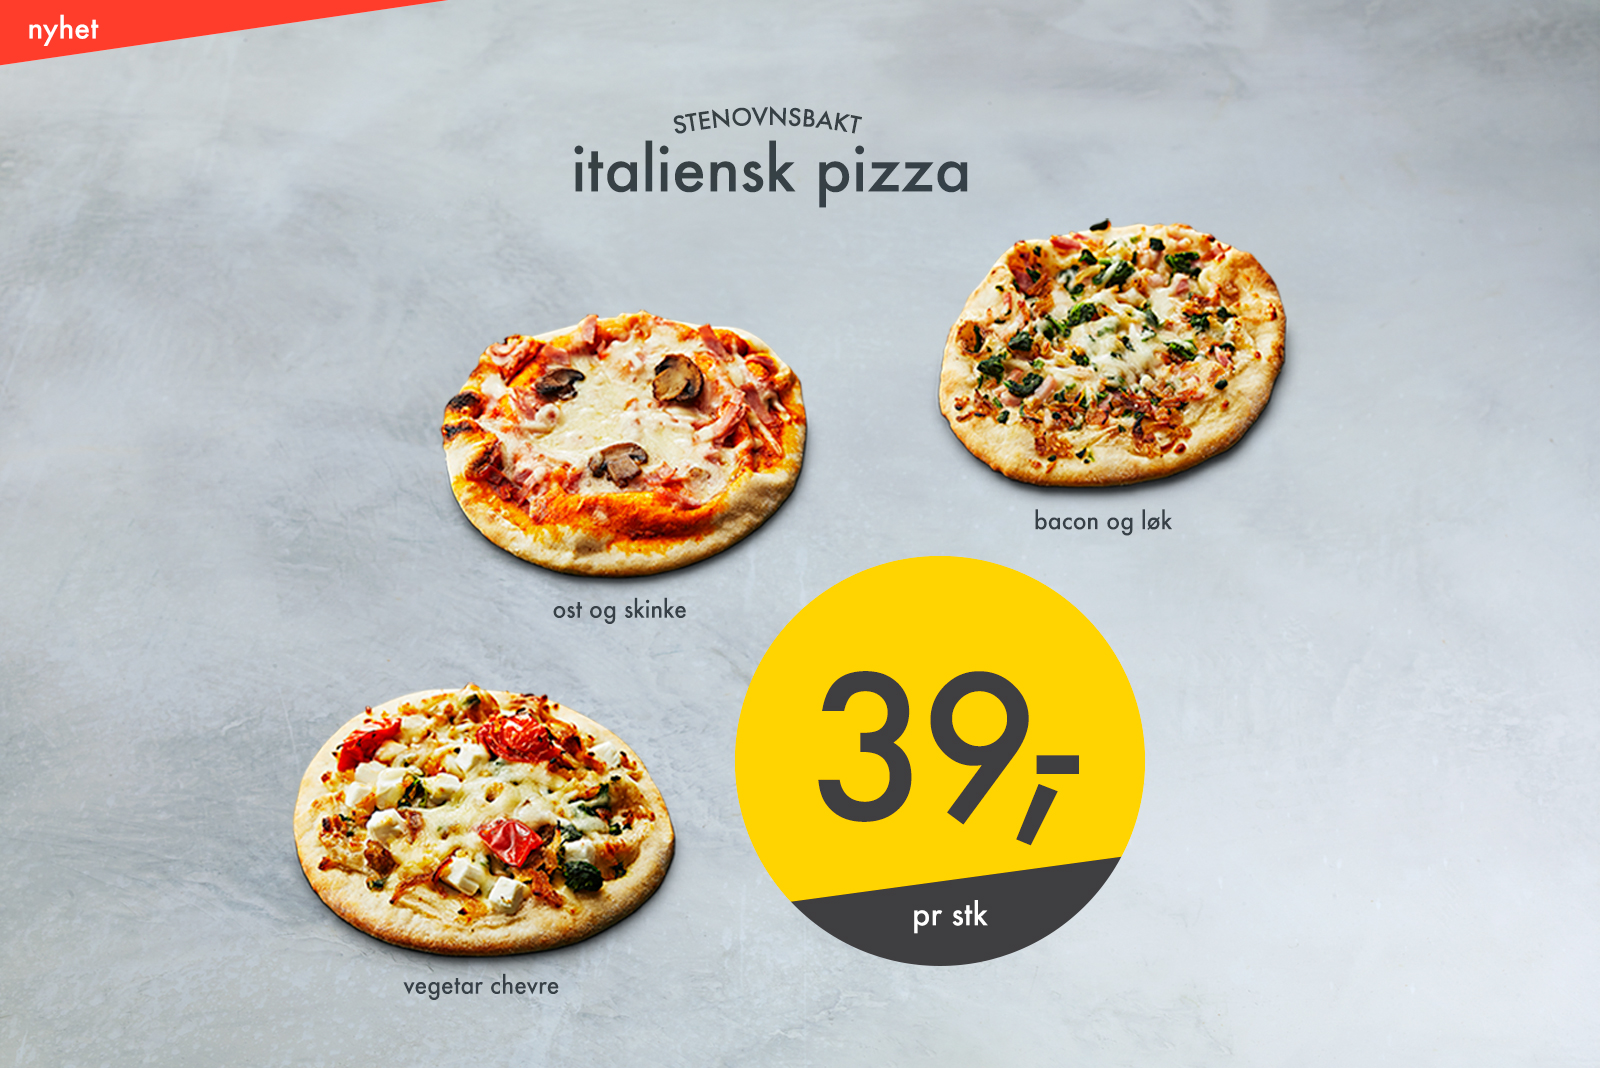 Pizza for 39 kr